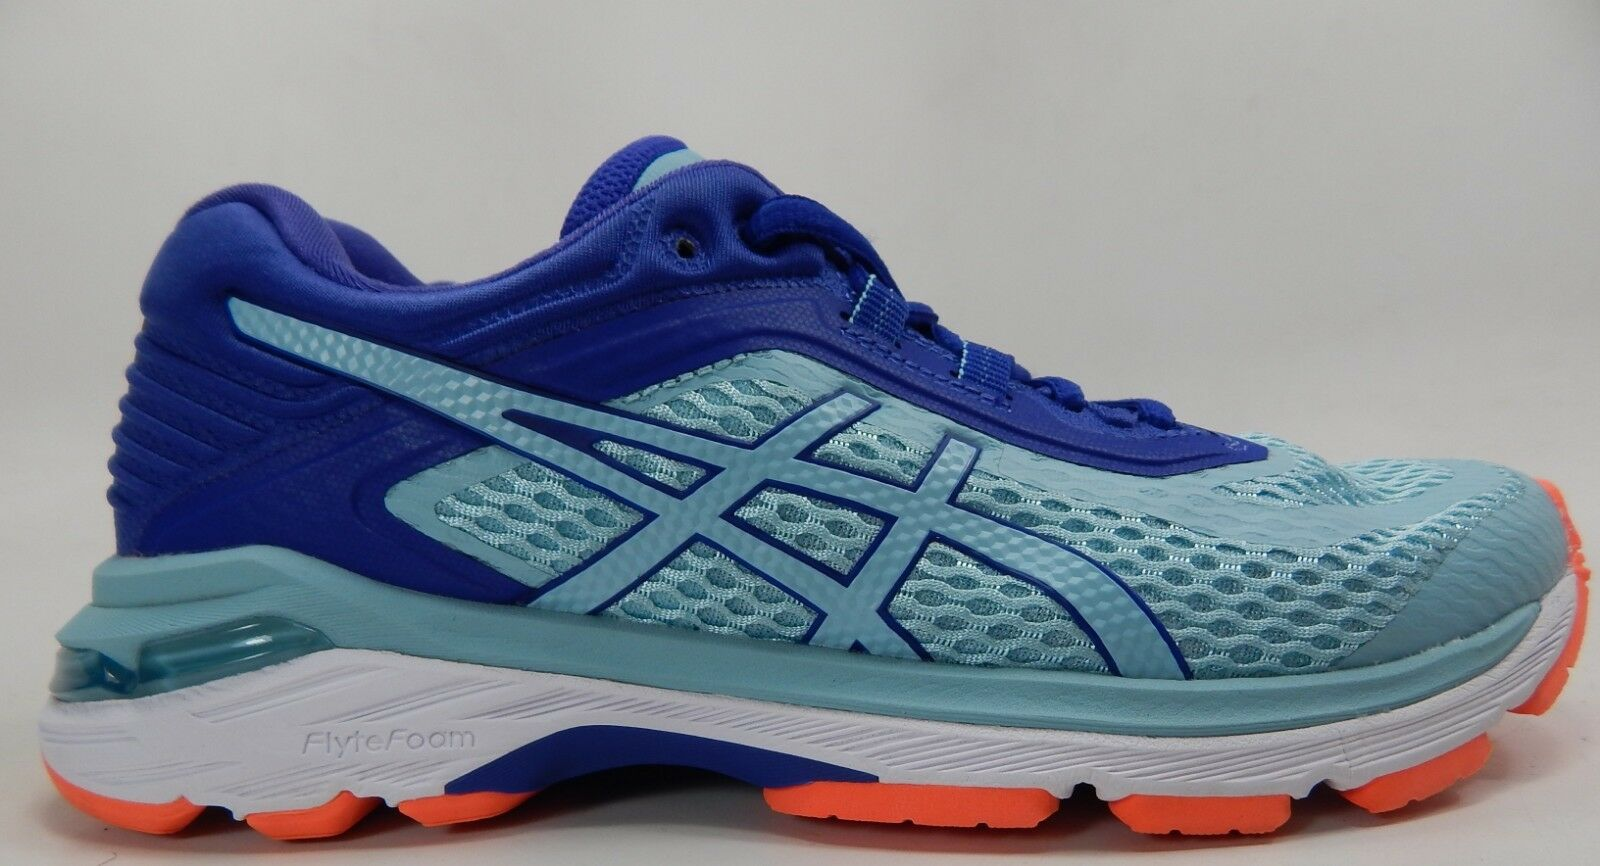 Asics GT 2000 v 6 Size US  6.5 M (B) EU 37.5 Women's Running shoes bluee T855N